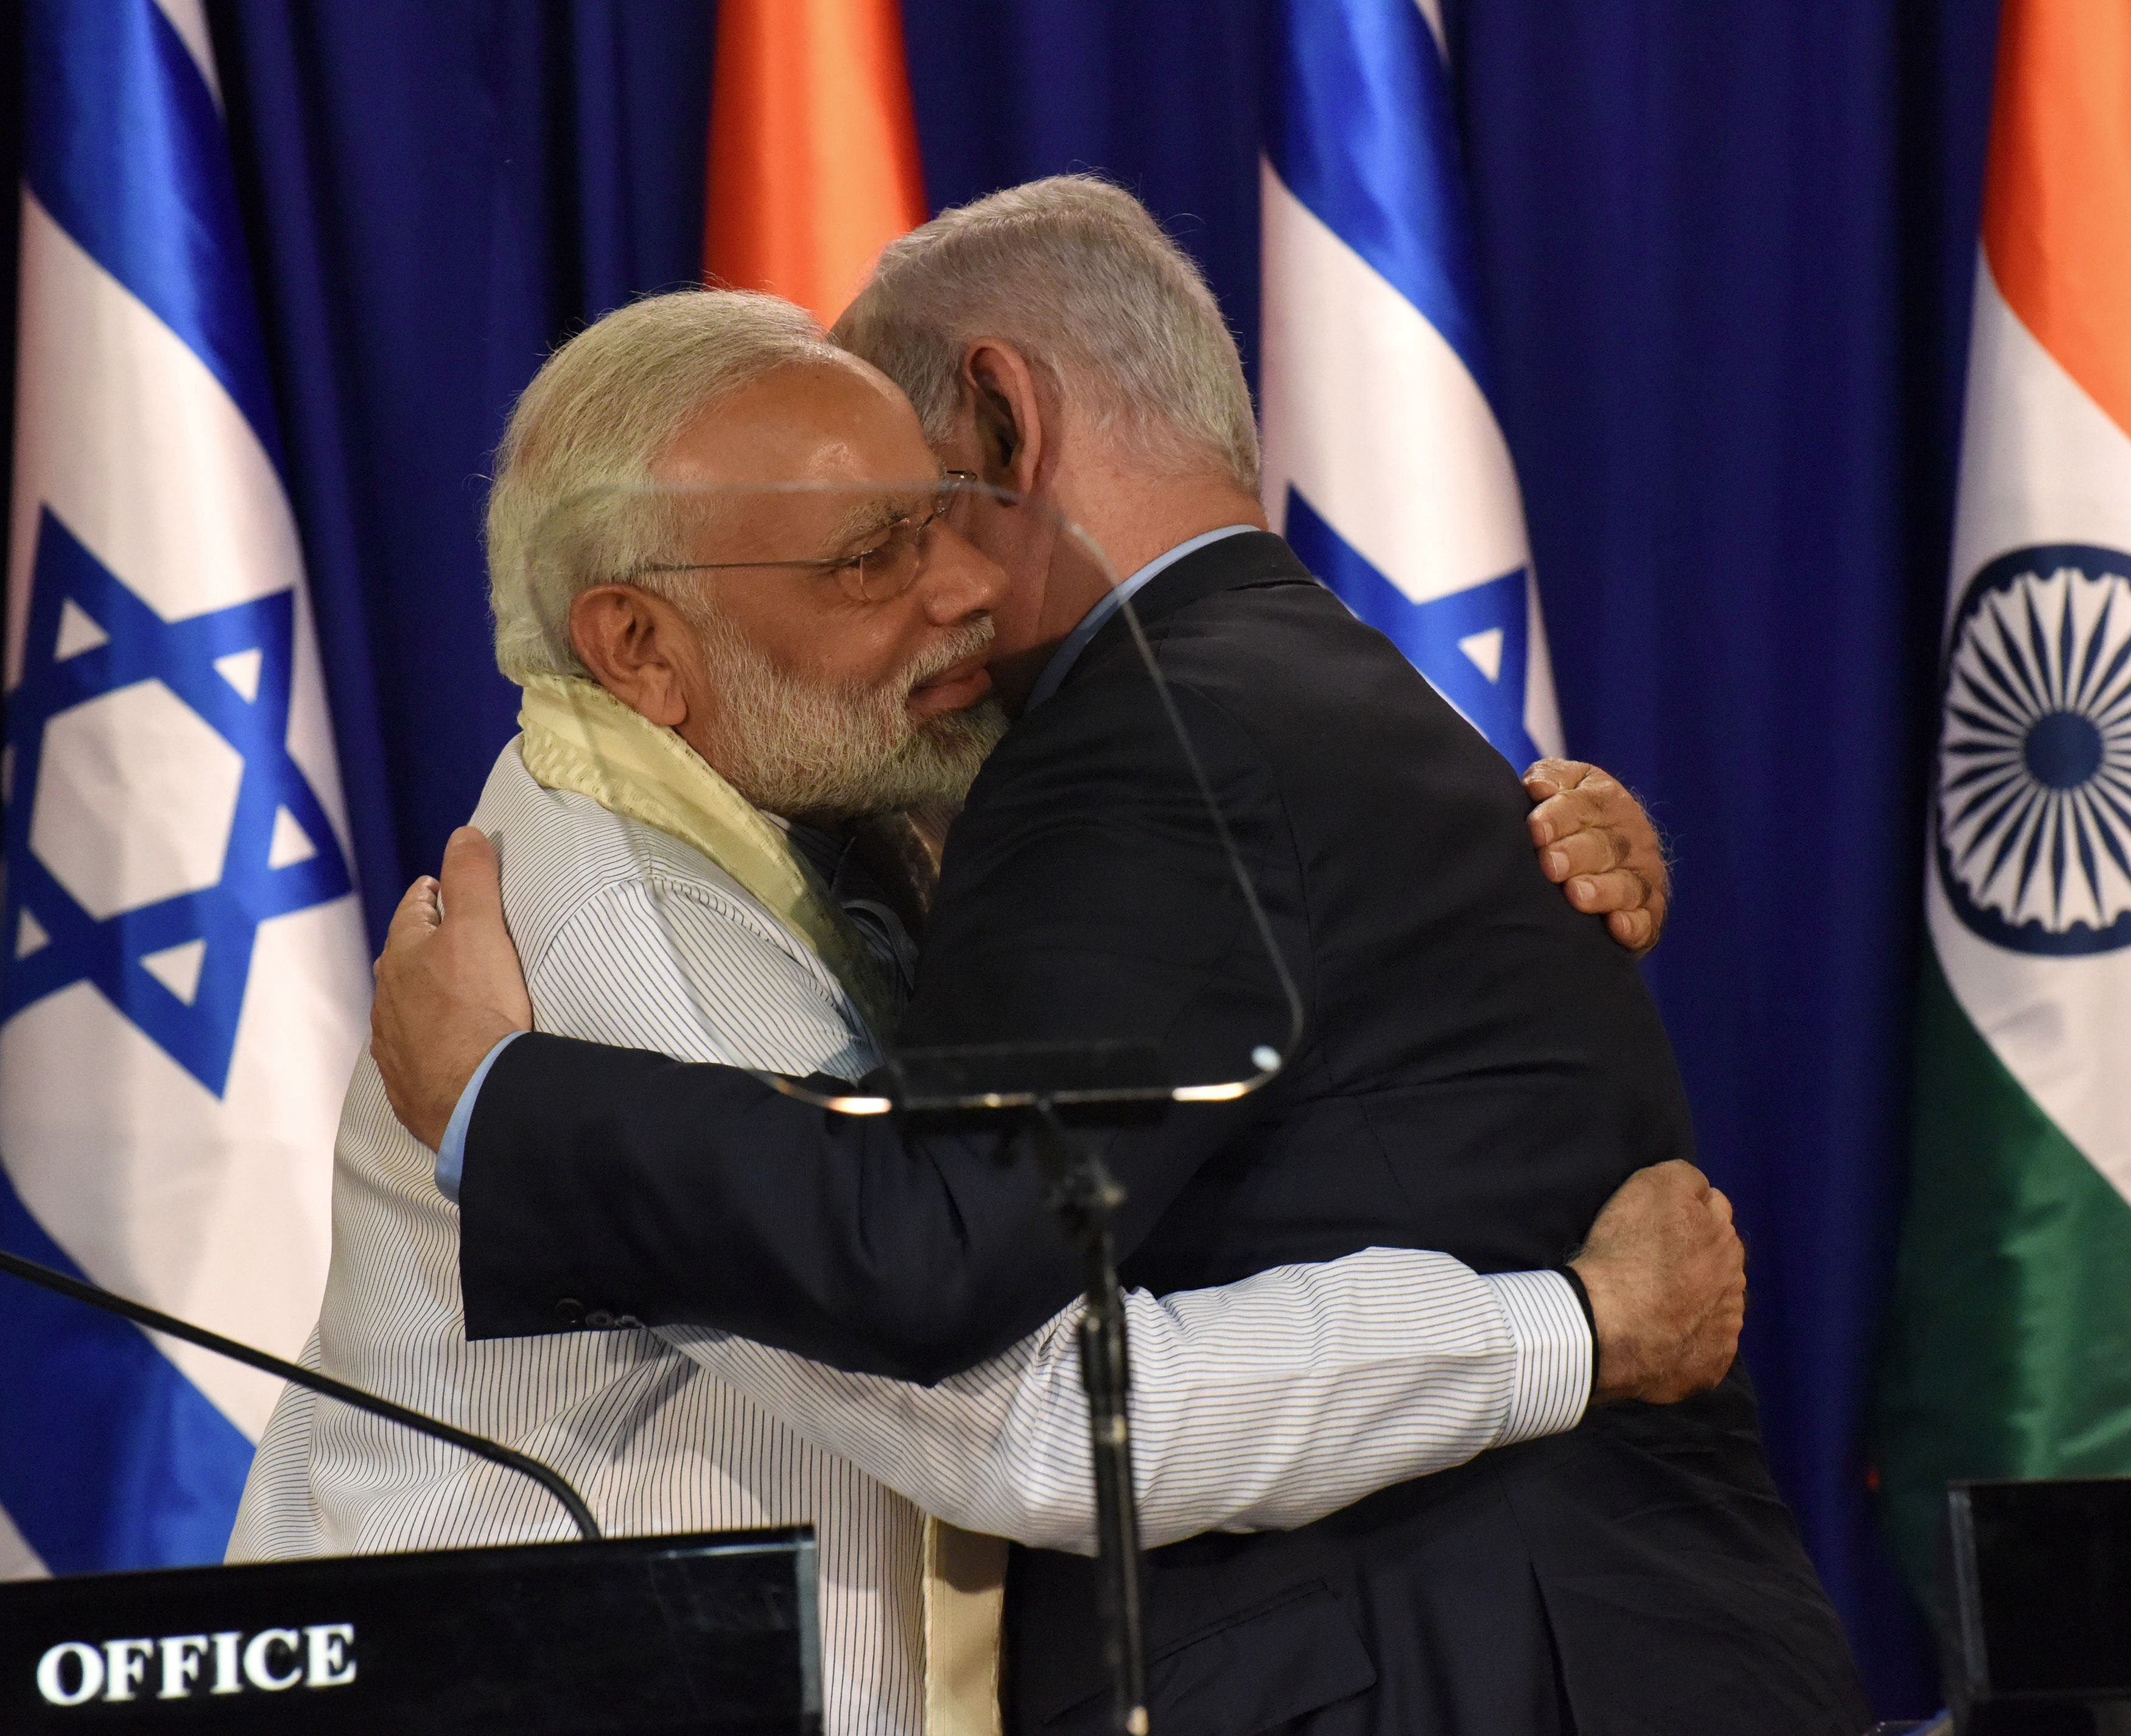 Indian Prime Minister Narendra Modi (L) and Israeli Prime Minister Benjamin Netanyahu embrace following a statement on July 4, 2017, at the Netanyahus' residence in Jerusalem.